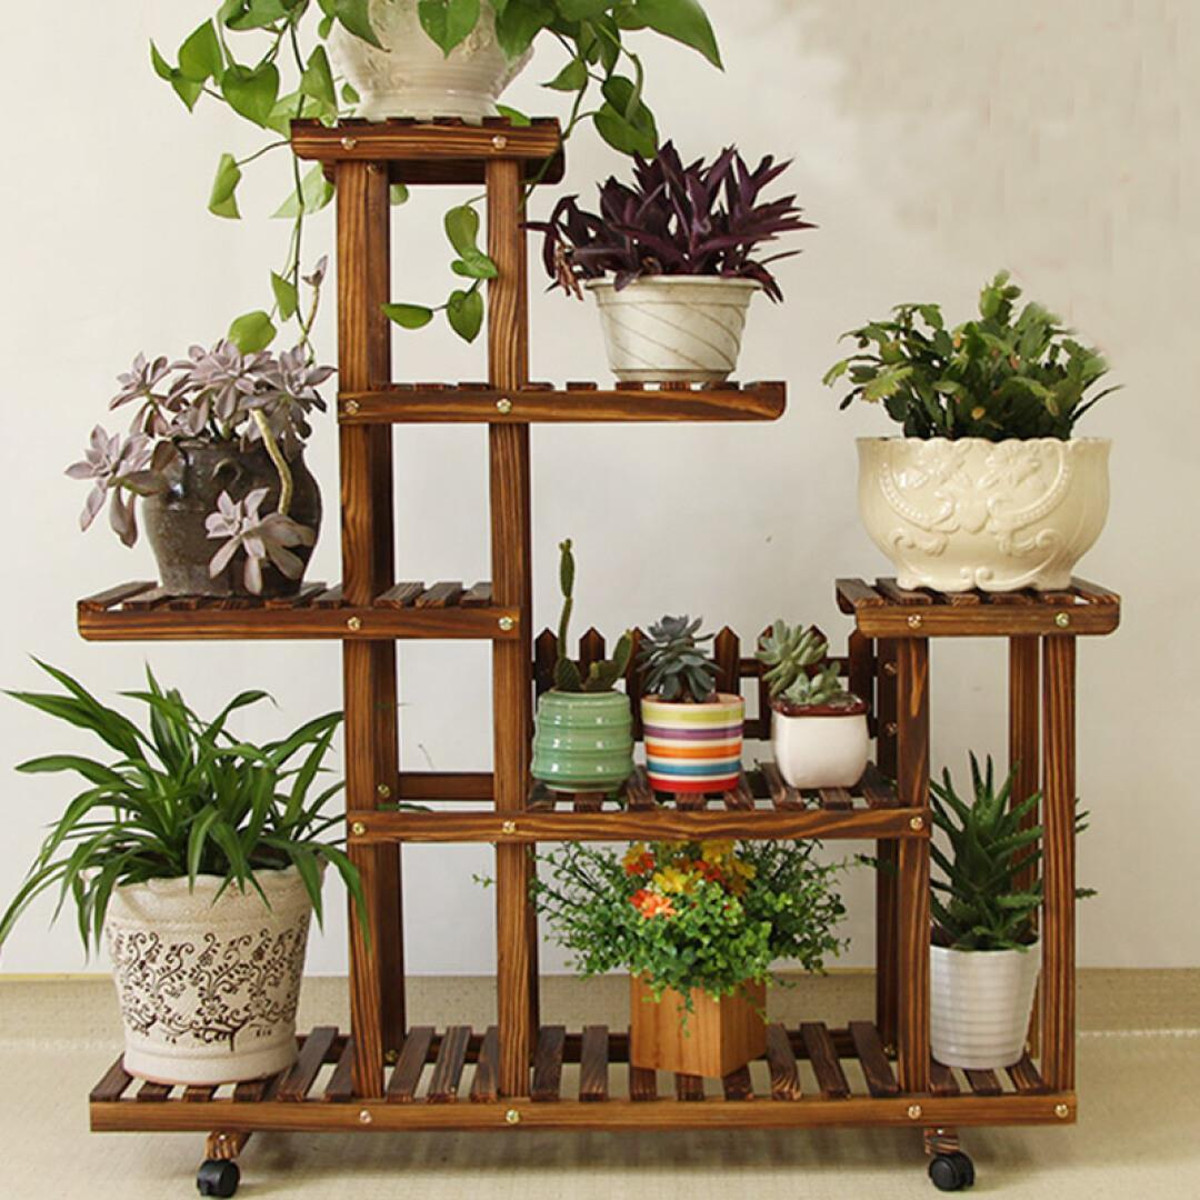 Bamboo Plant Flower Pot Stand Garden Planter Nursery Pot Stand Shelf